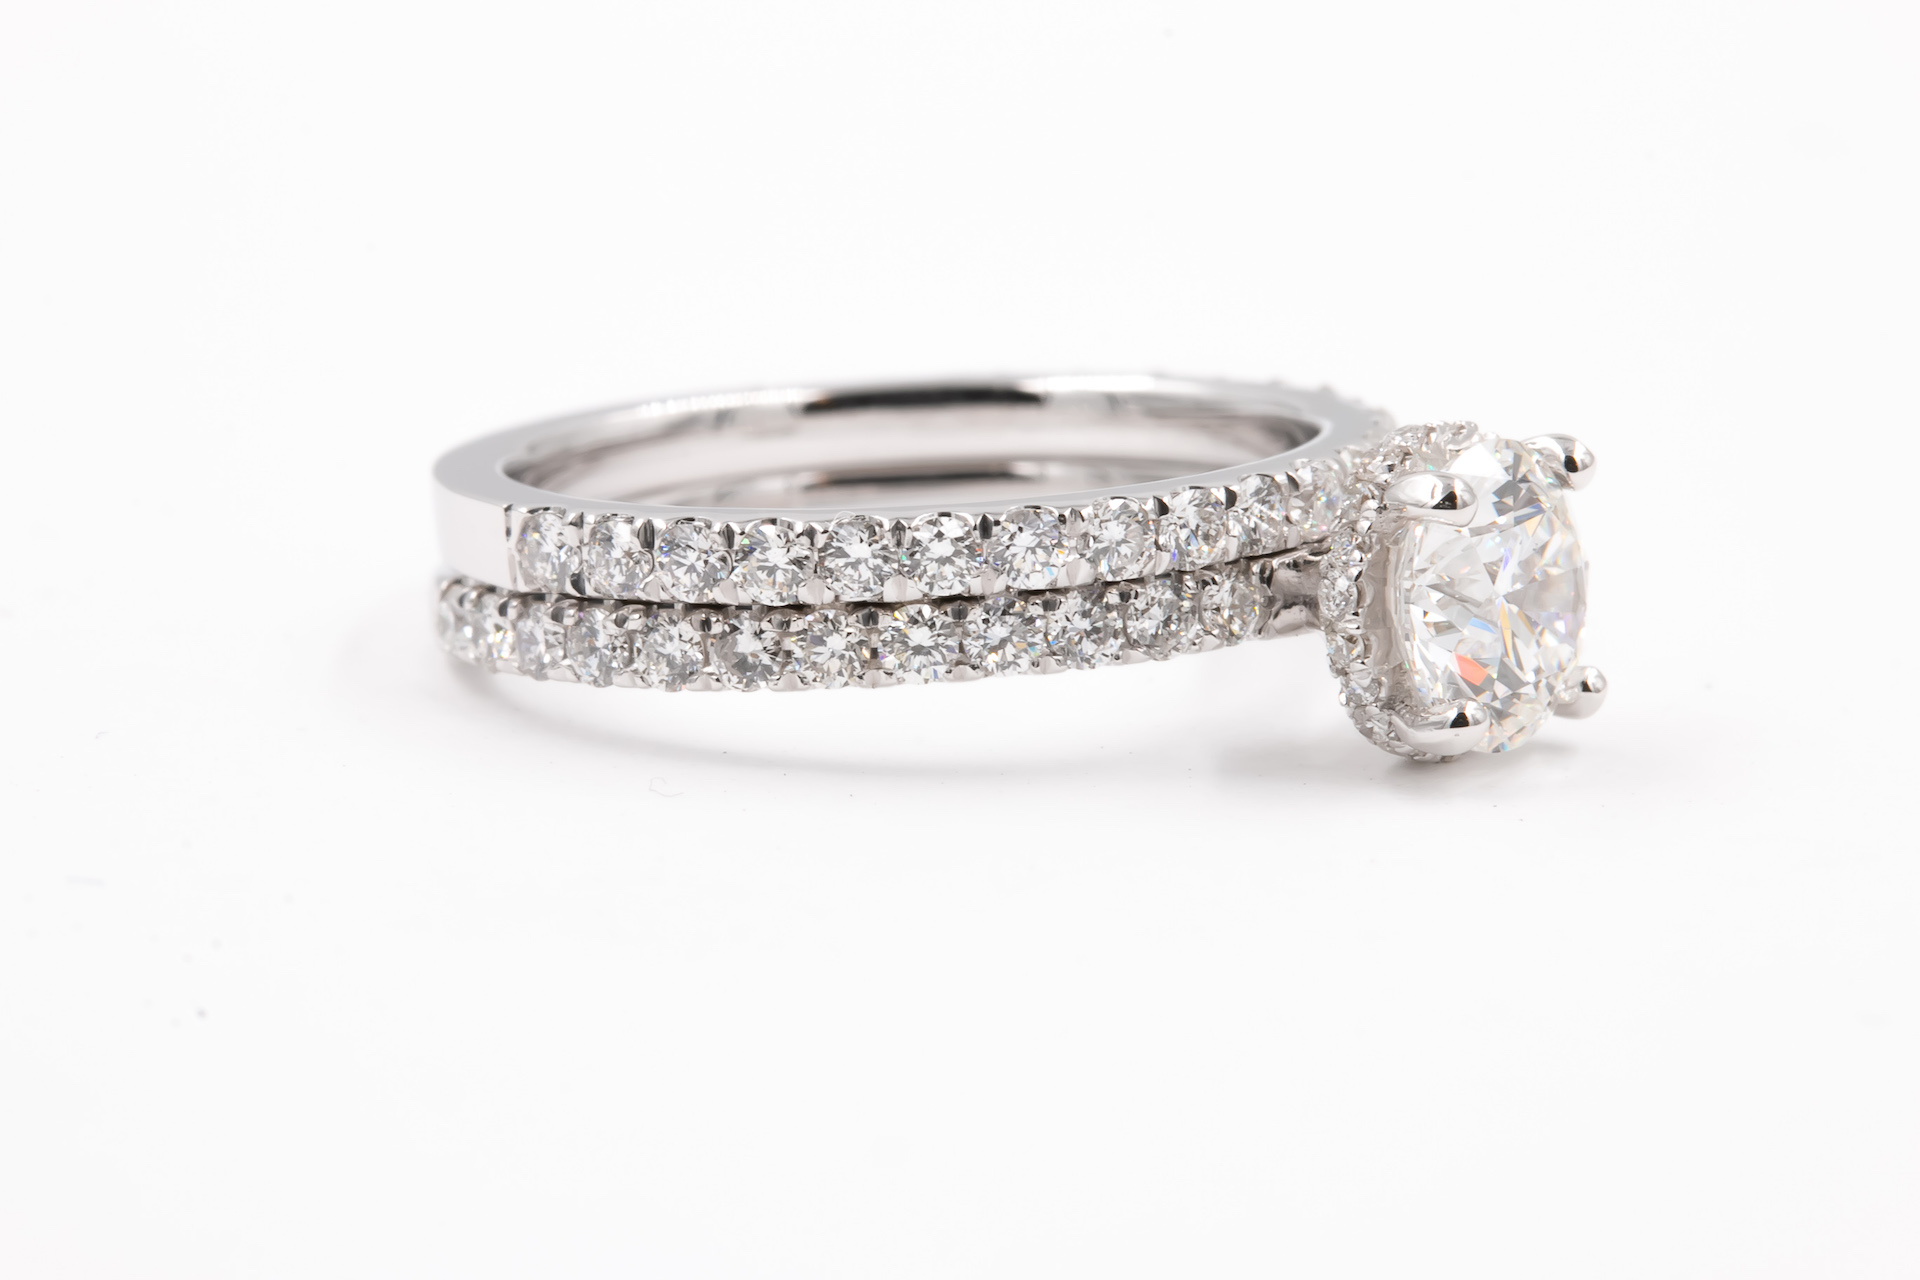 solitaire-diamond-setting-engagement-ring-2